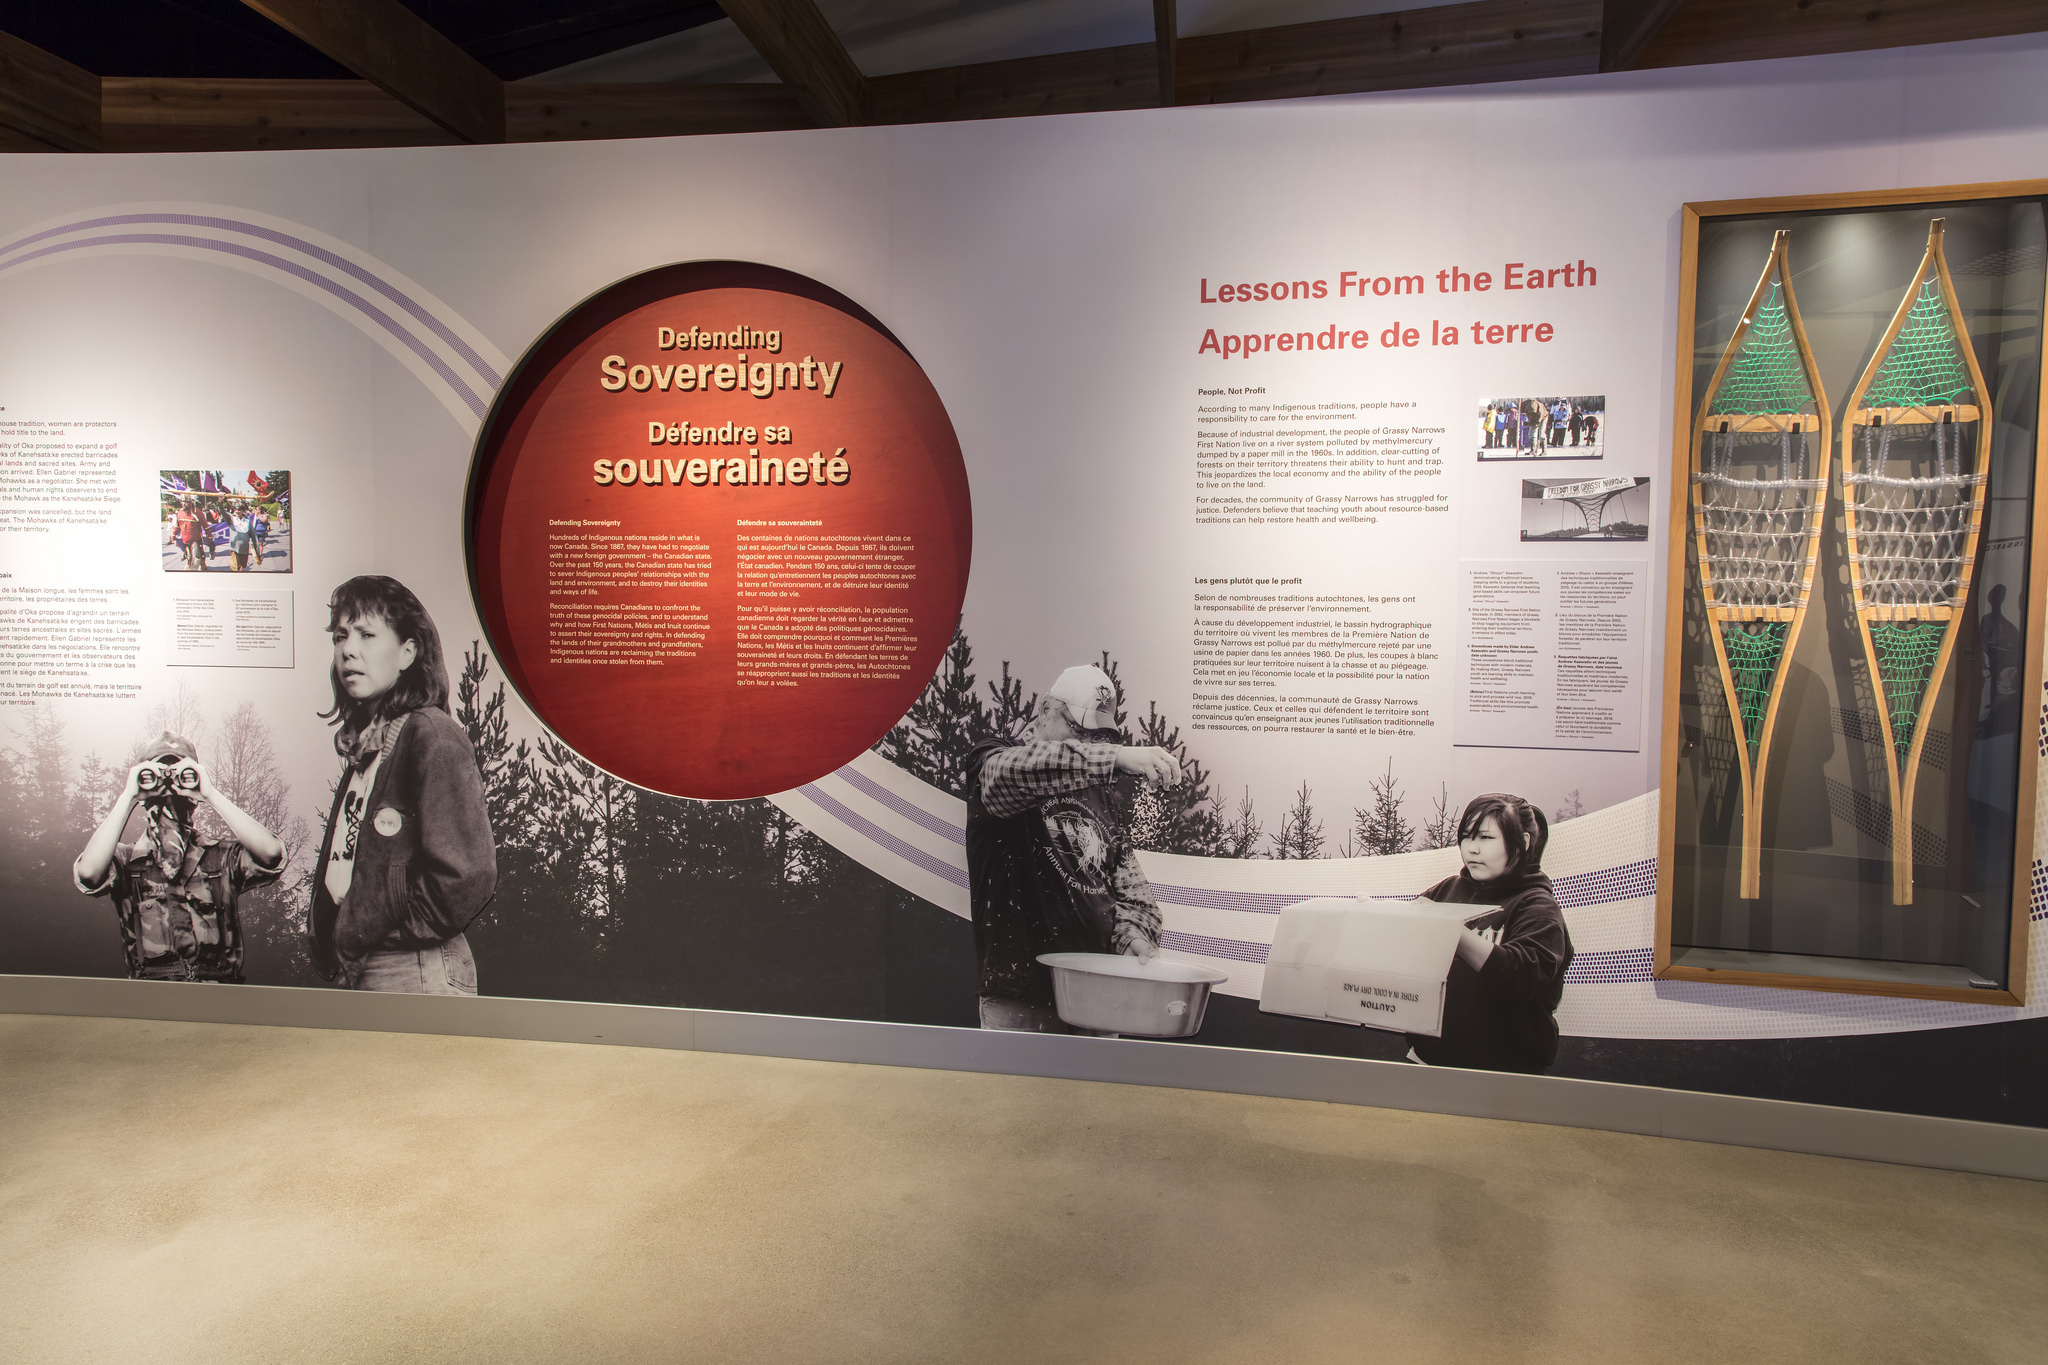 A wall with a depressed red circle in the center containing exhibition text on the left. To the right, a pair of show shoes in a glass case.